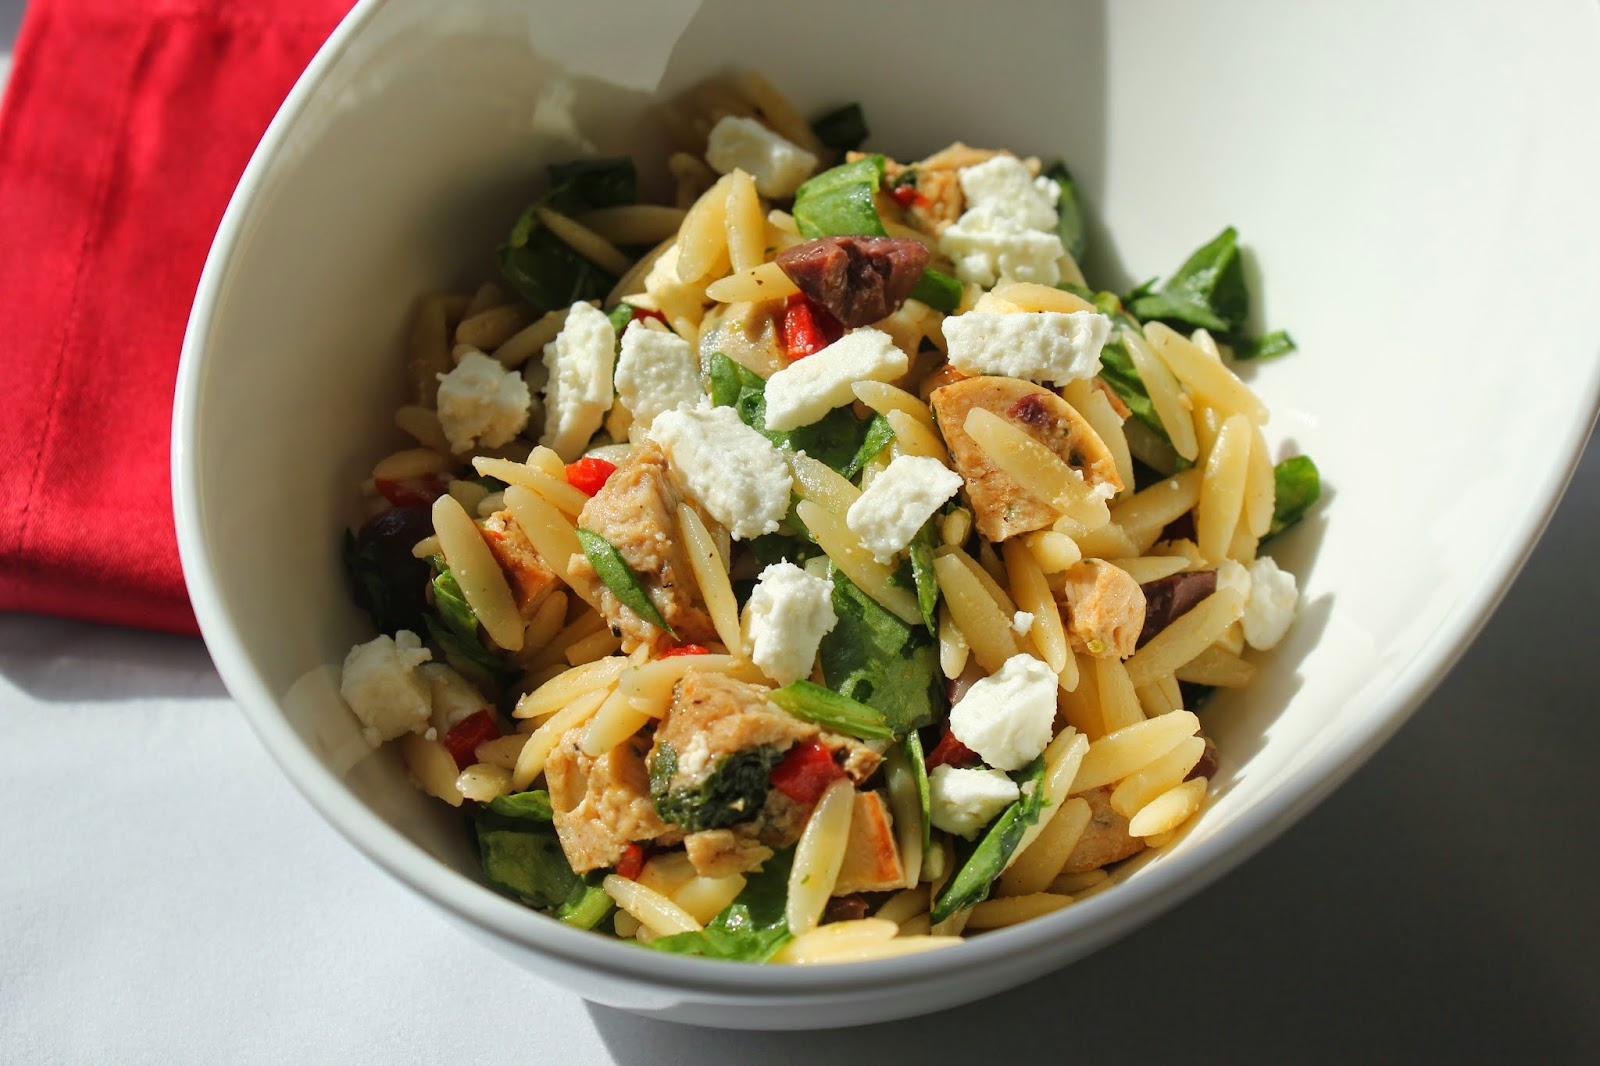 Orzo salad with chicken sausage, spinach, and feta